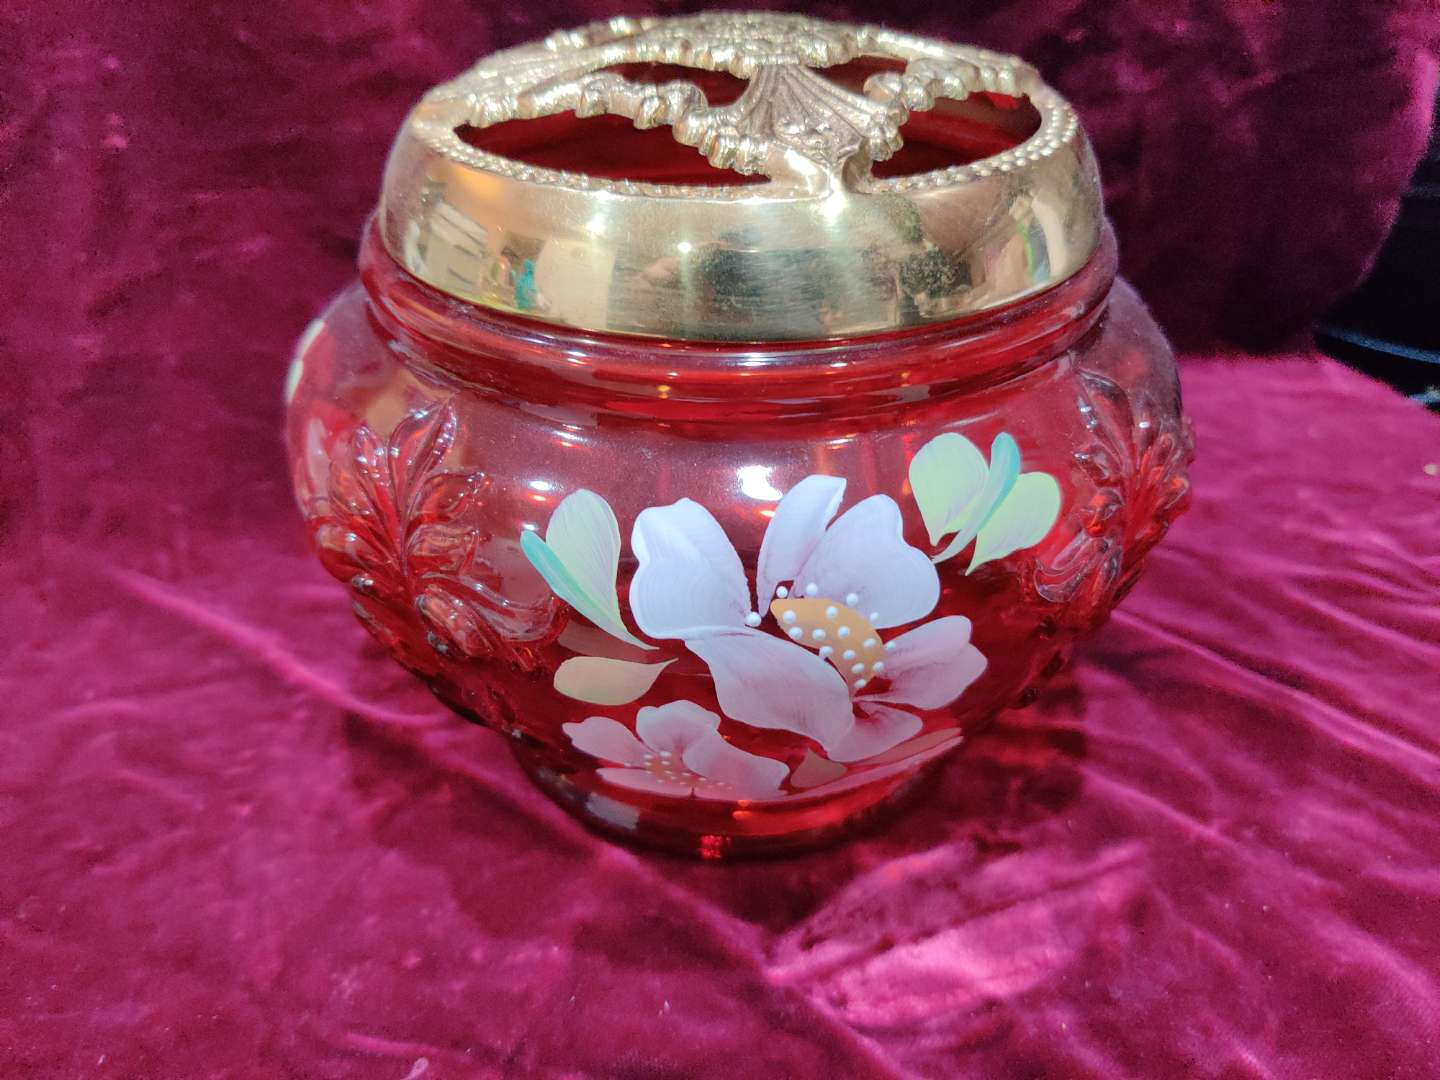 # 62 red Fenton hand-painted flower arrangement bowl with metal top 6 in tall 7 in wide and great condition